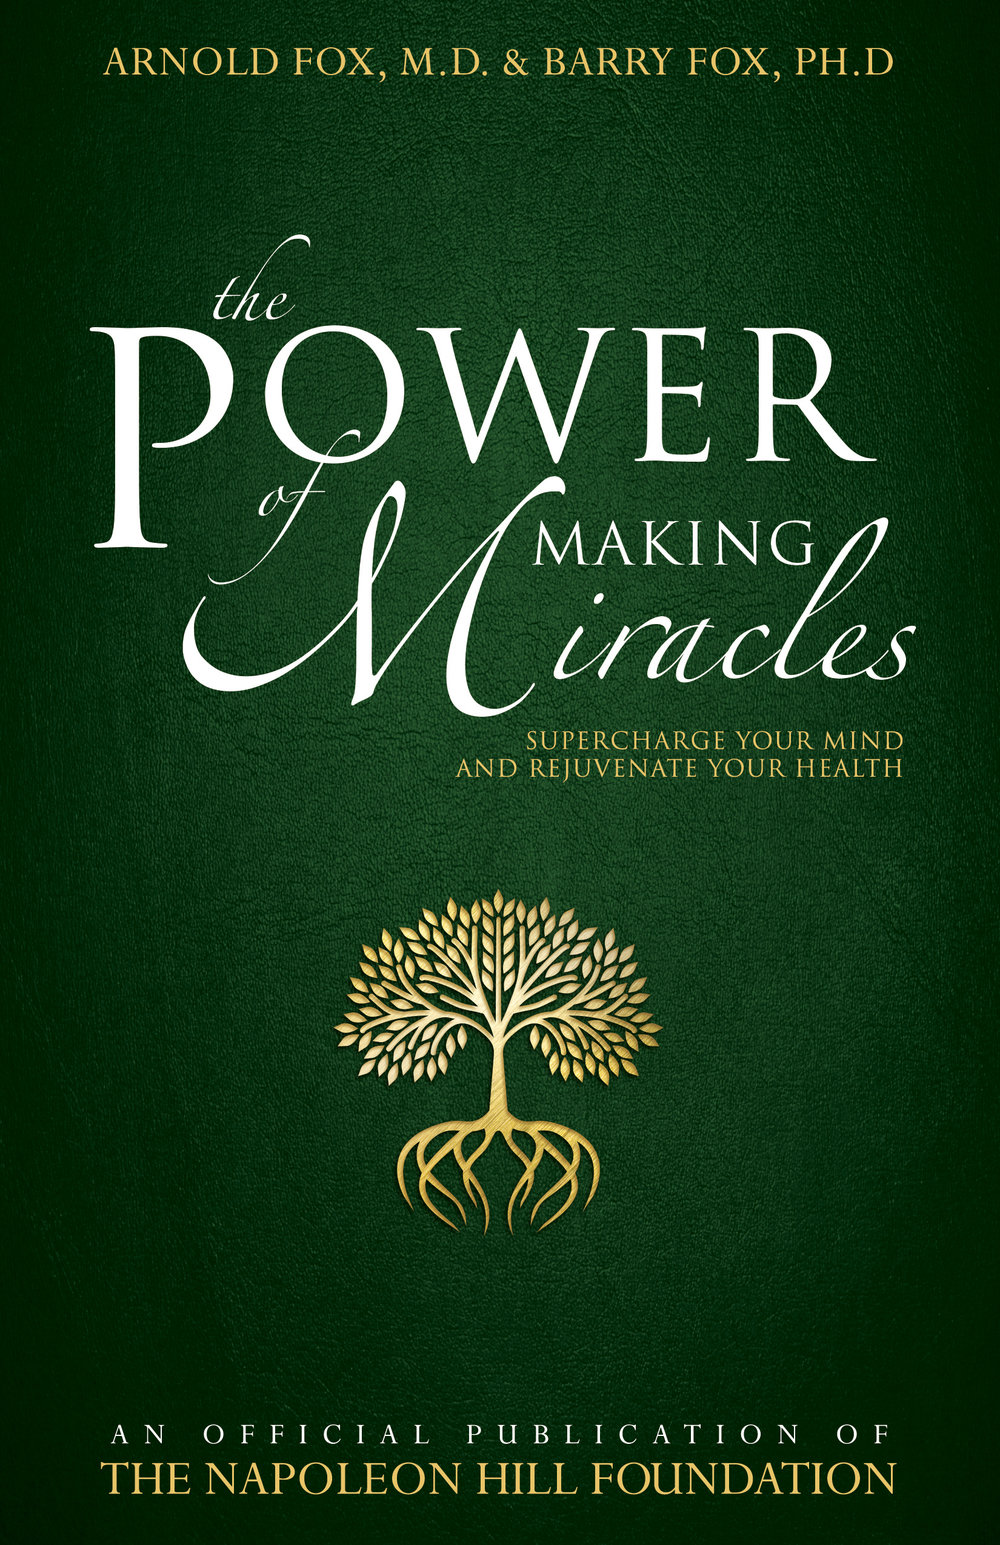 The Power of Making Miracles - By arnold fox, md and barry fox, phd